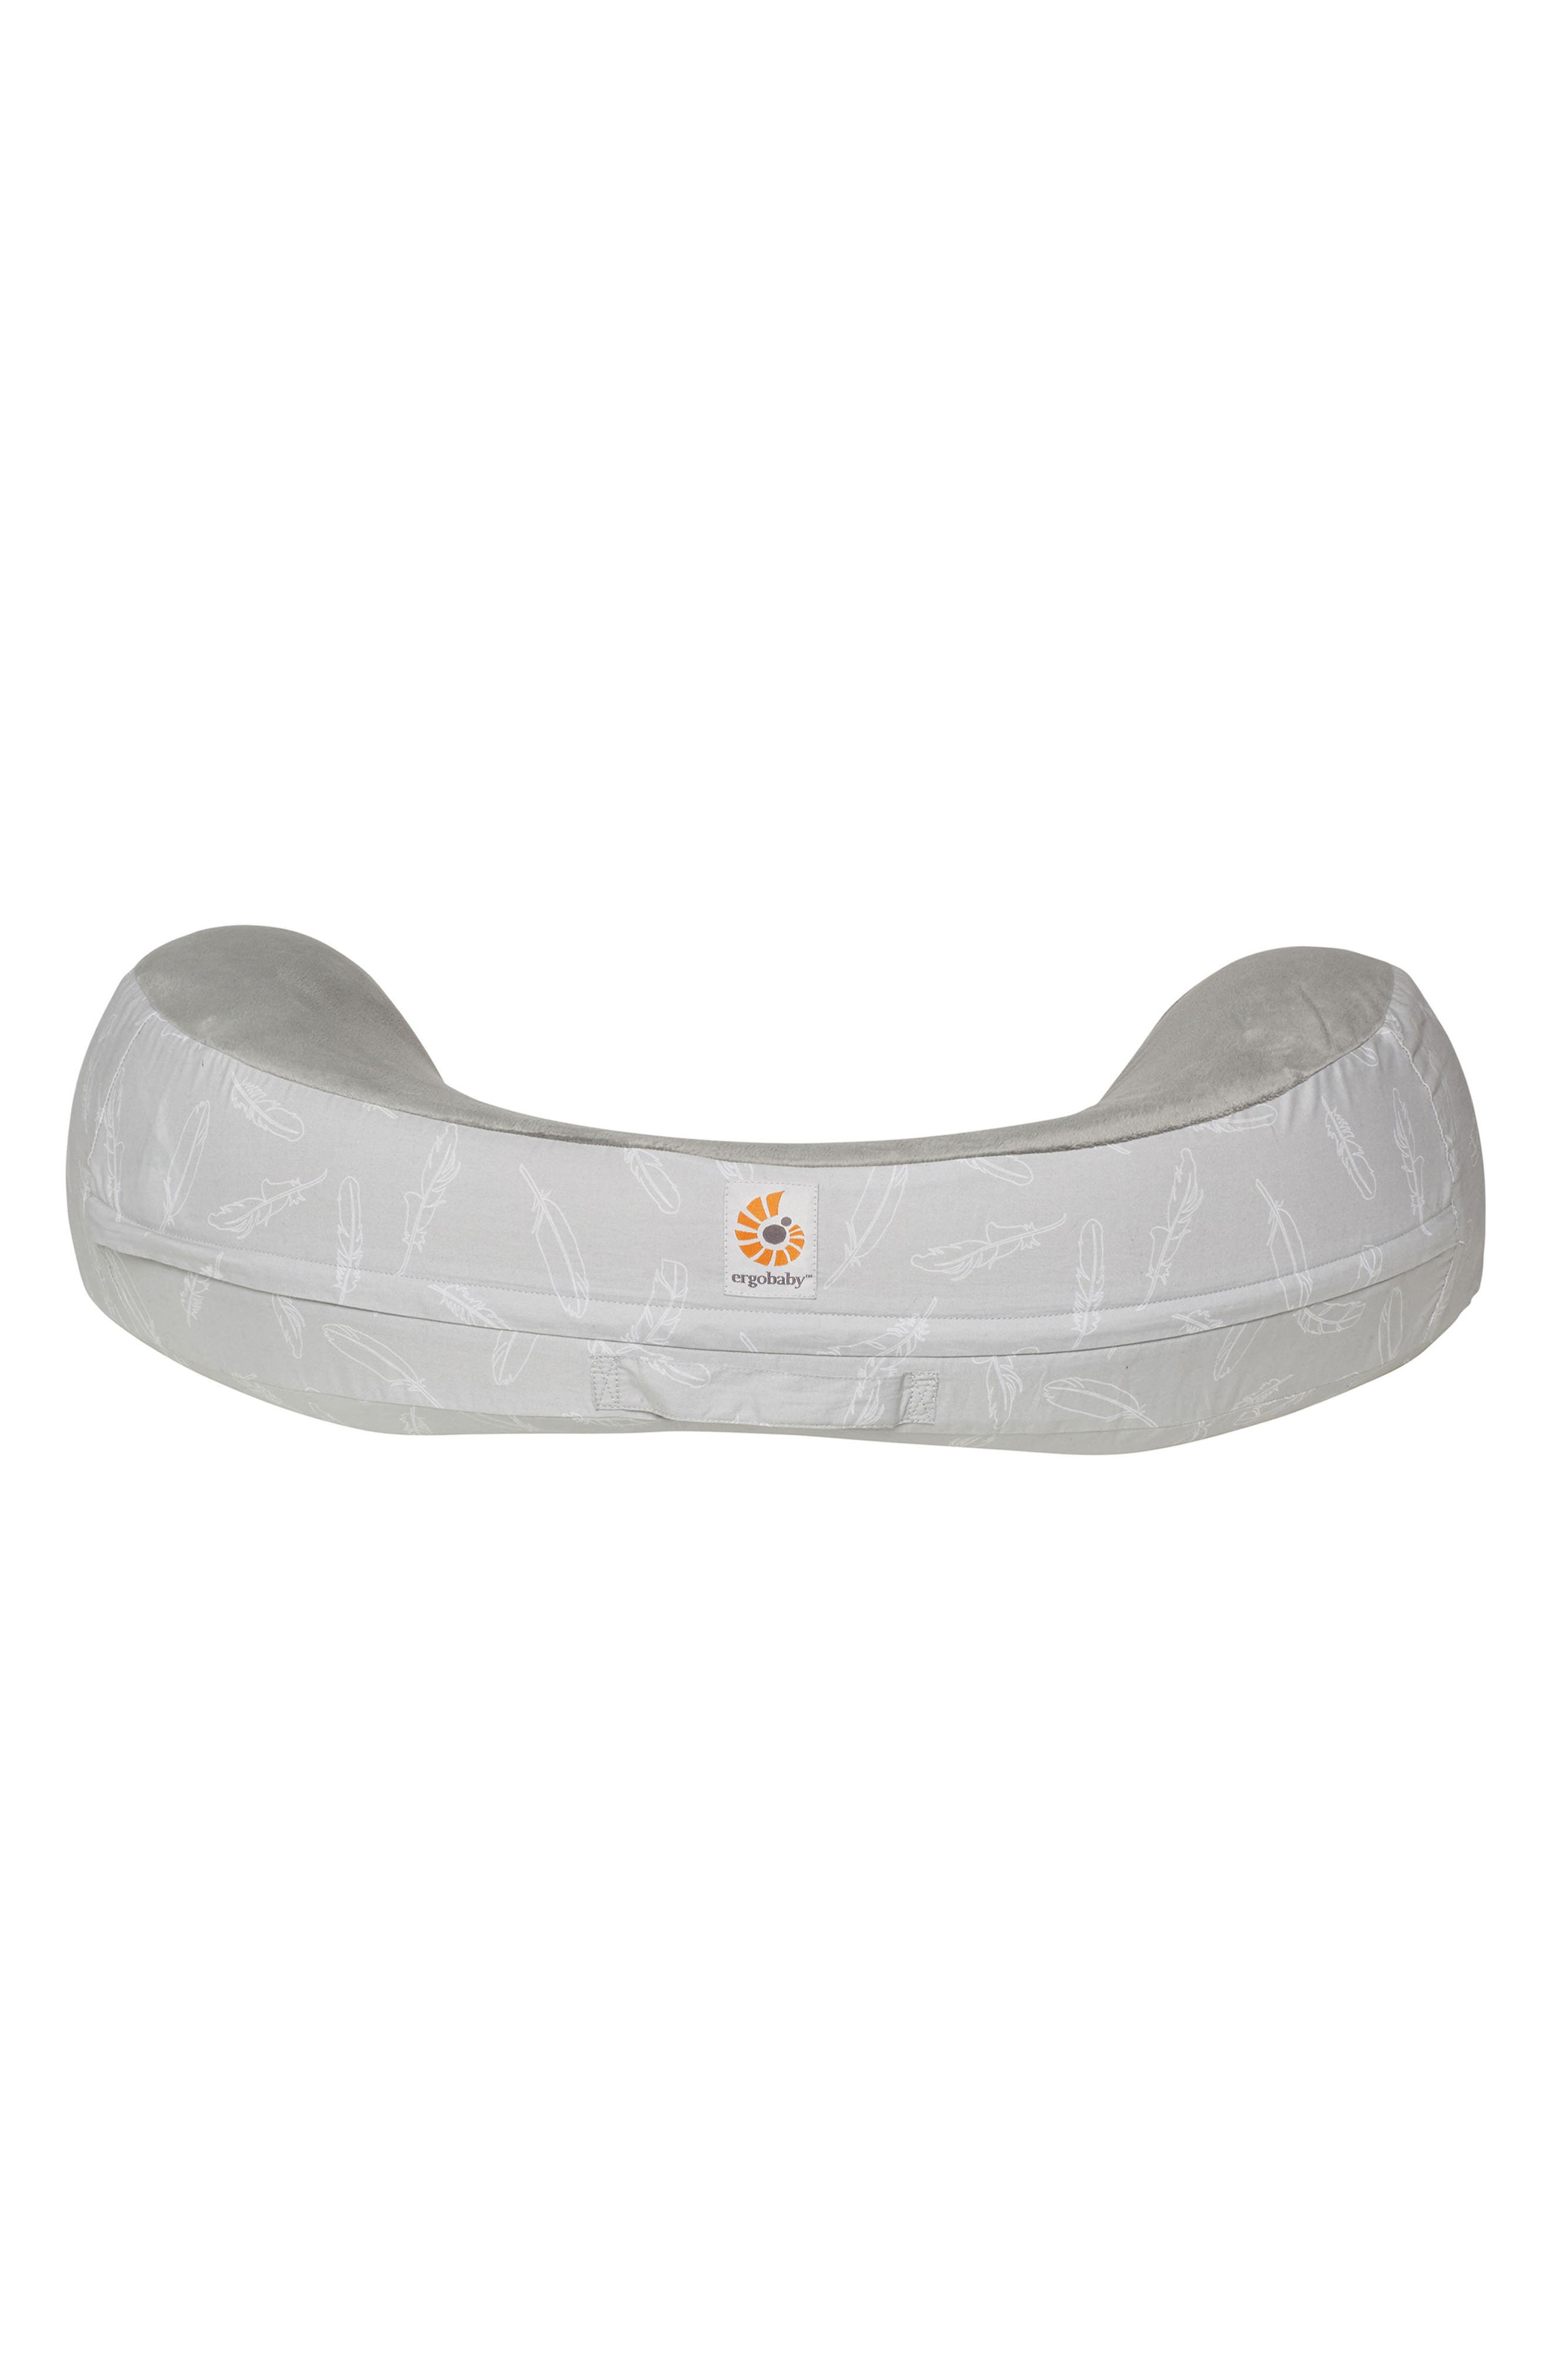 Natural Curve Nursing Pillow,                         Main,                         color, 020